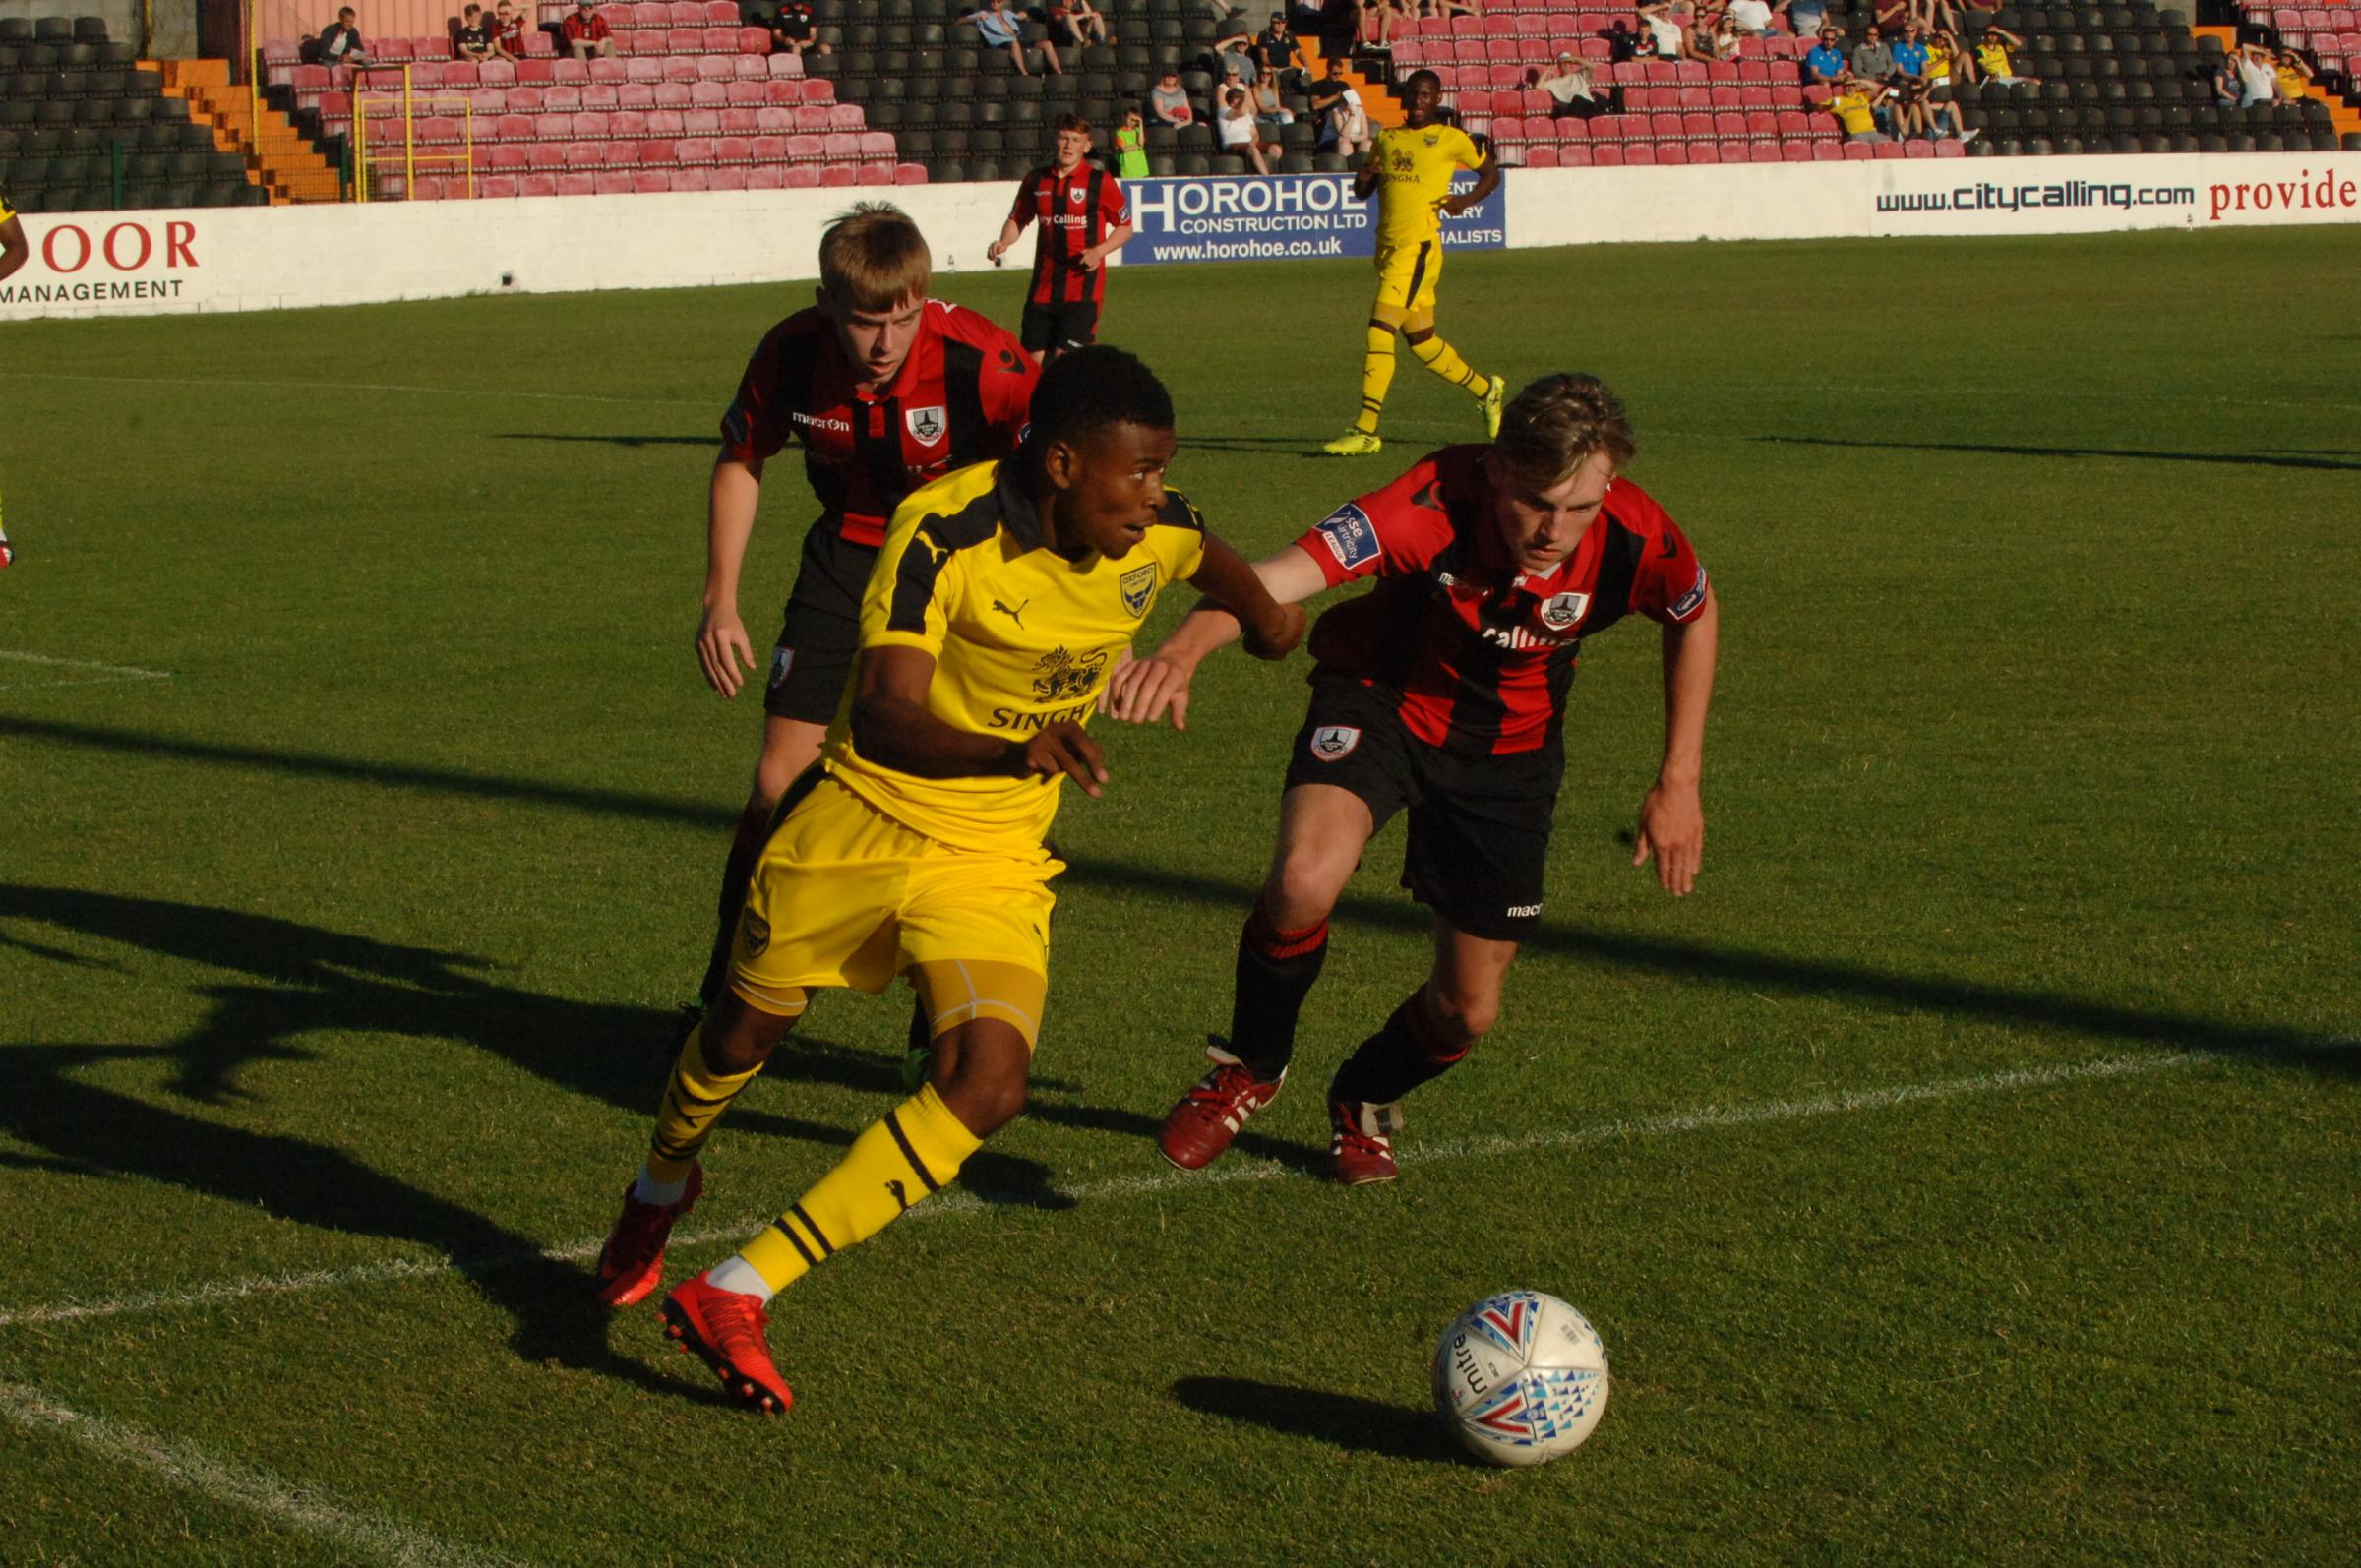 IMPRESSED: Malachi Napa on the ball for Oxford United against Longford Town Picture: David Pritchard